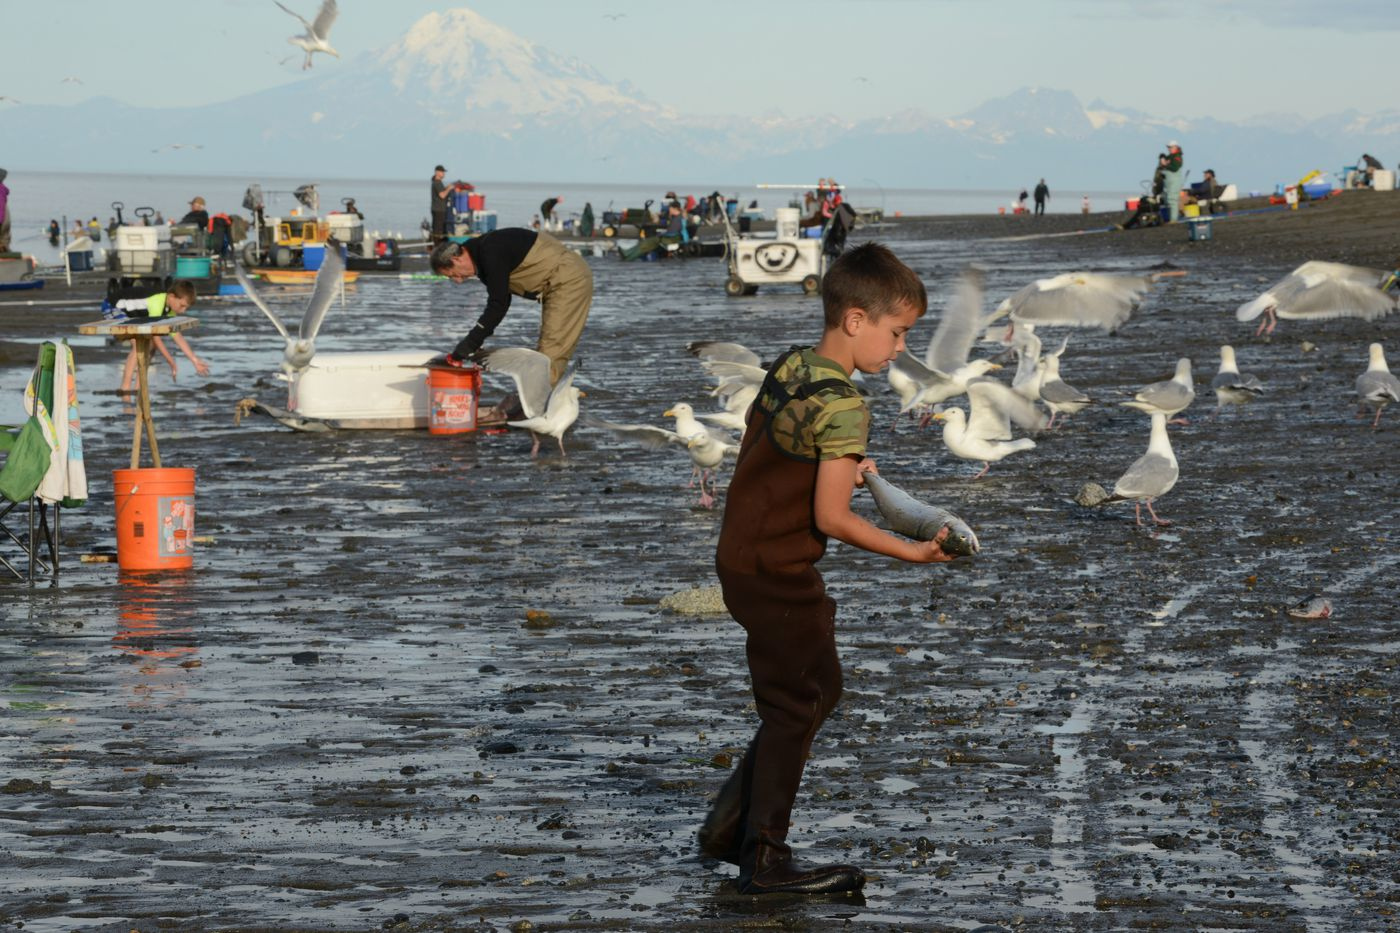 The Kenai River beach scene was busy with people, fish and birds July 21, 2020. (Anne Raup / ADN)